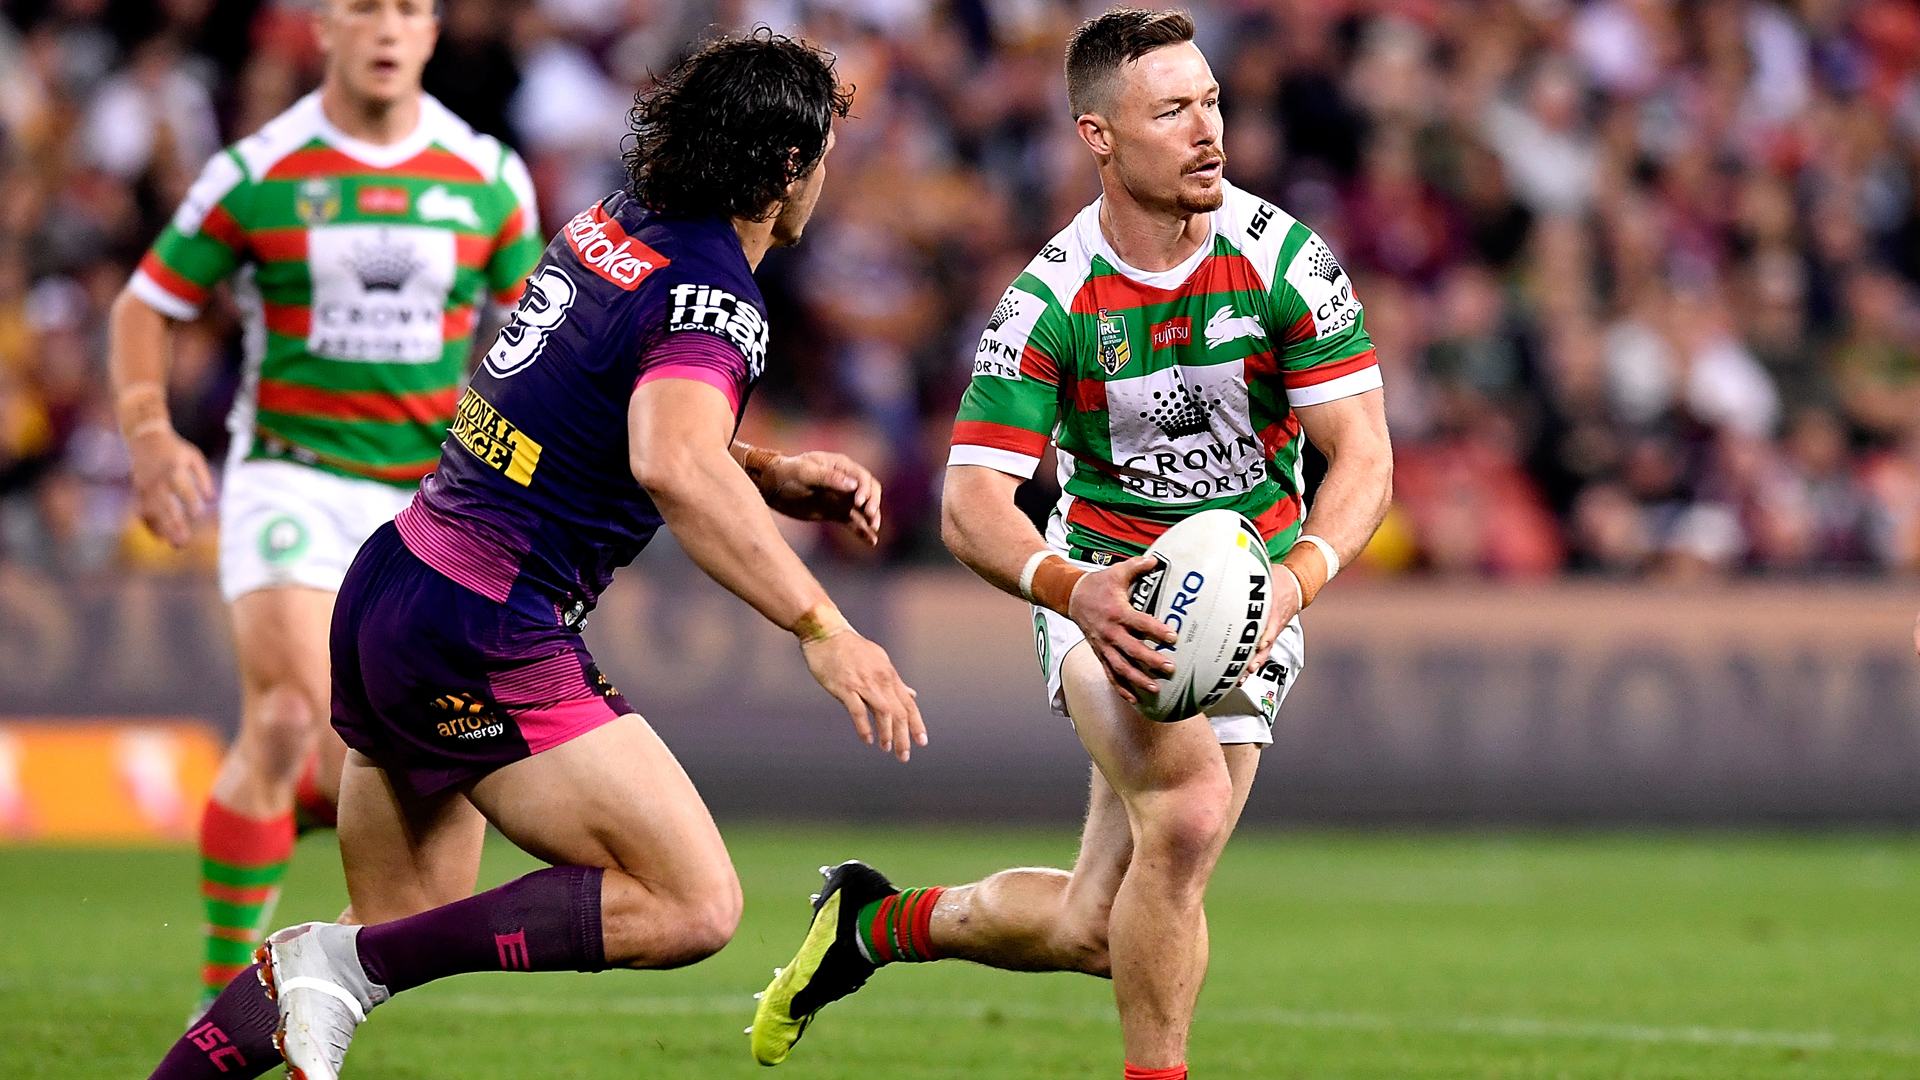 Days after Wayne Bennett's arrival was confirmed, Damien Cook has signed a long-term contract extension with the South Sydney Rabbitohs.